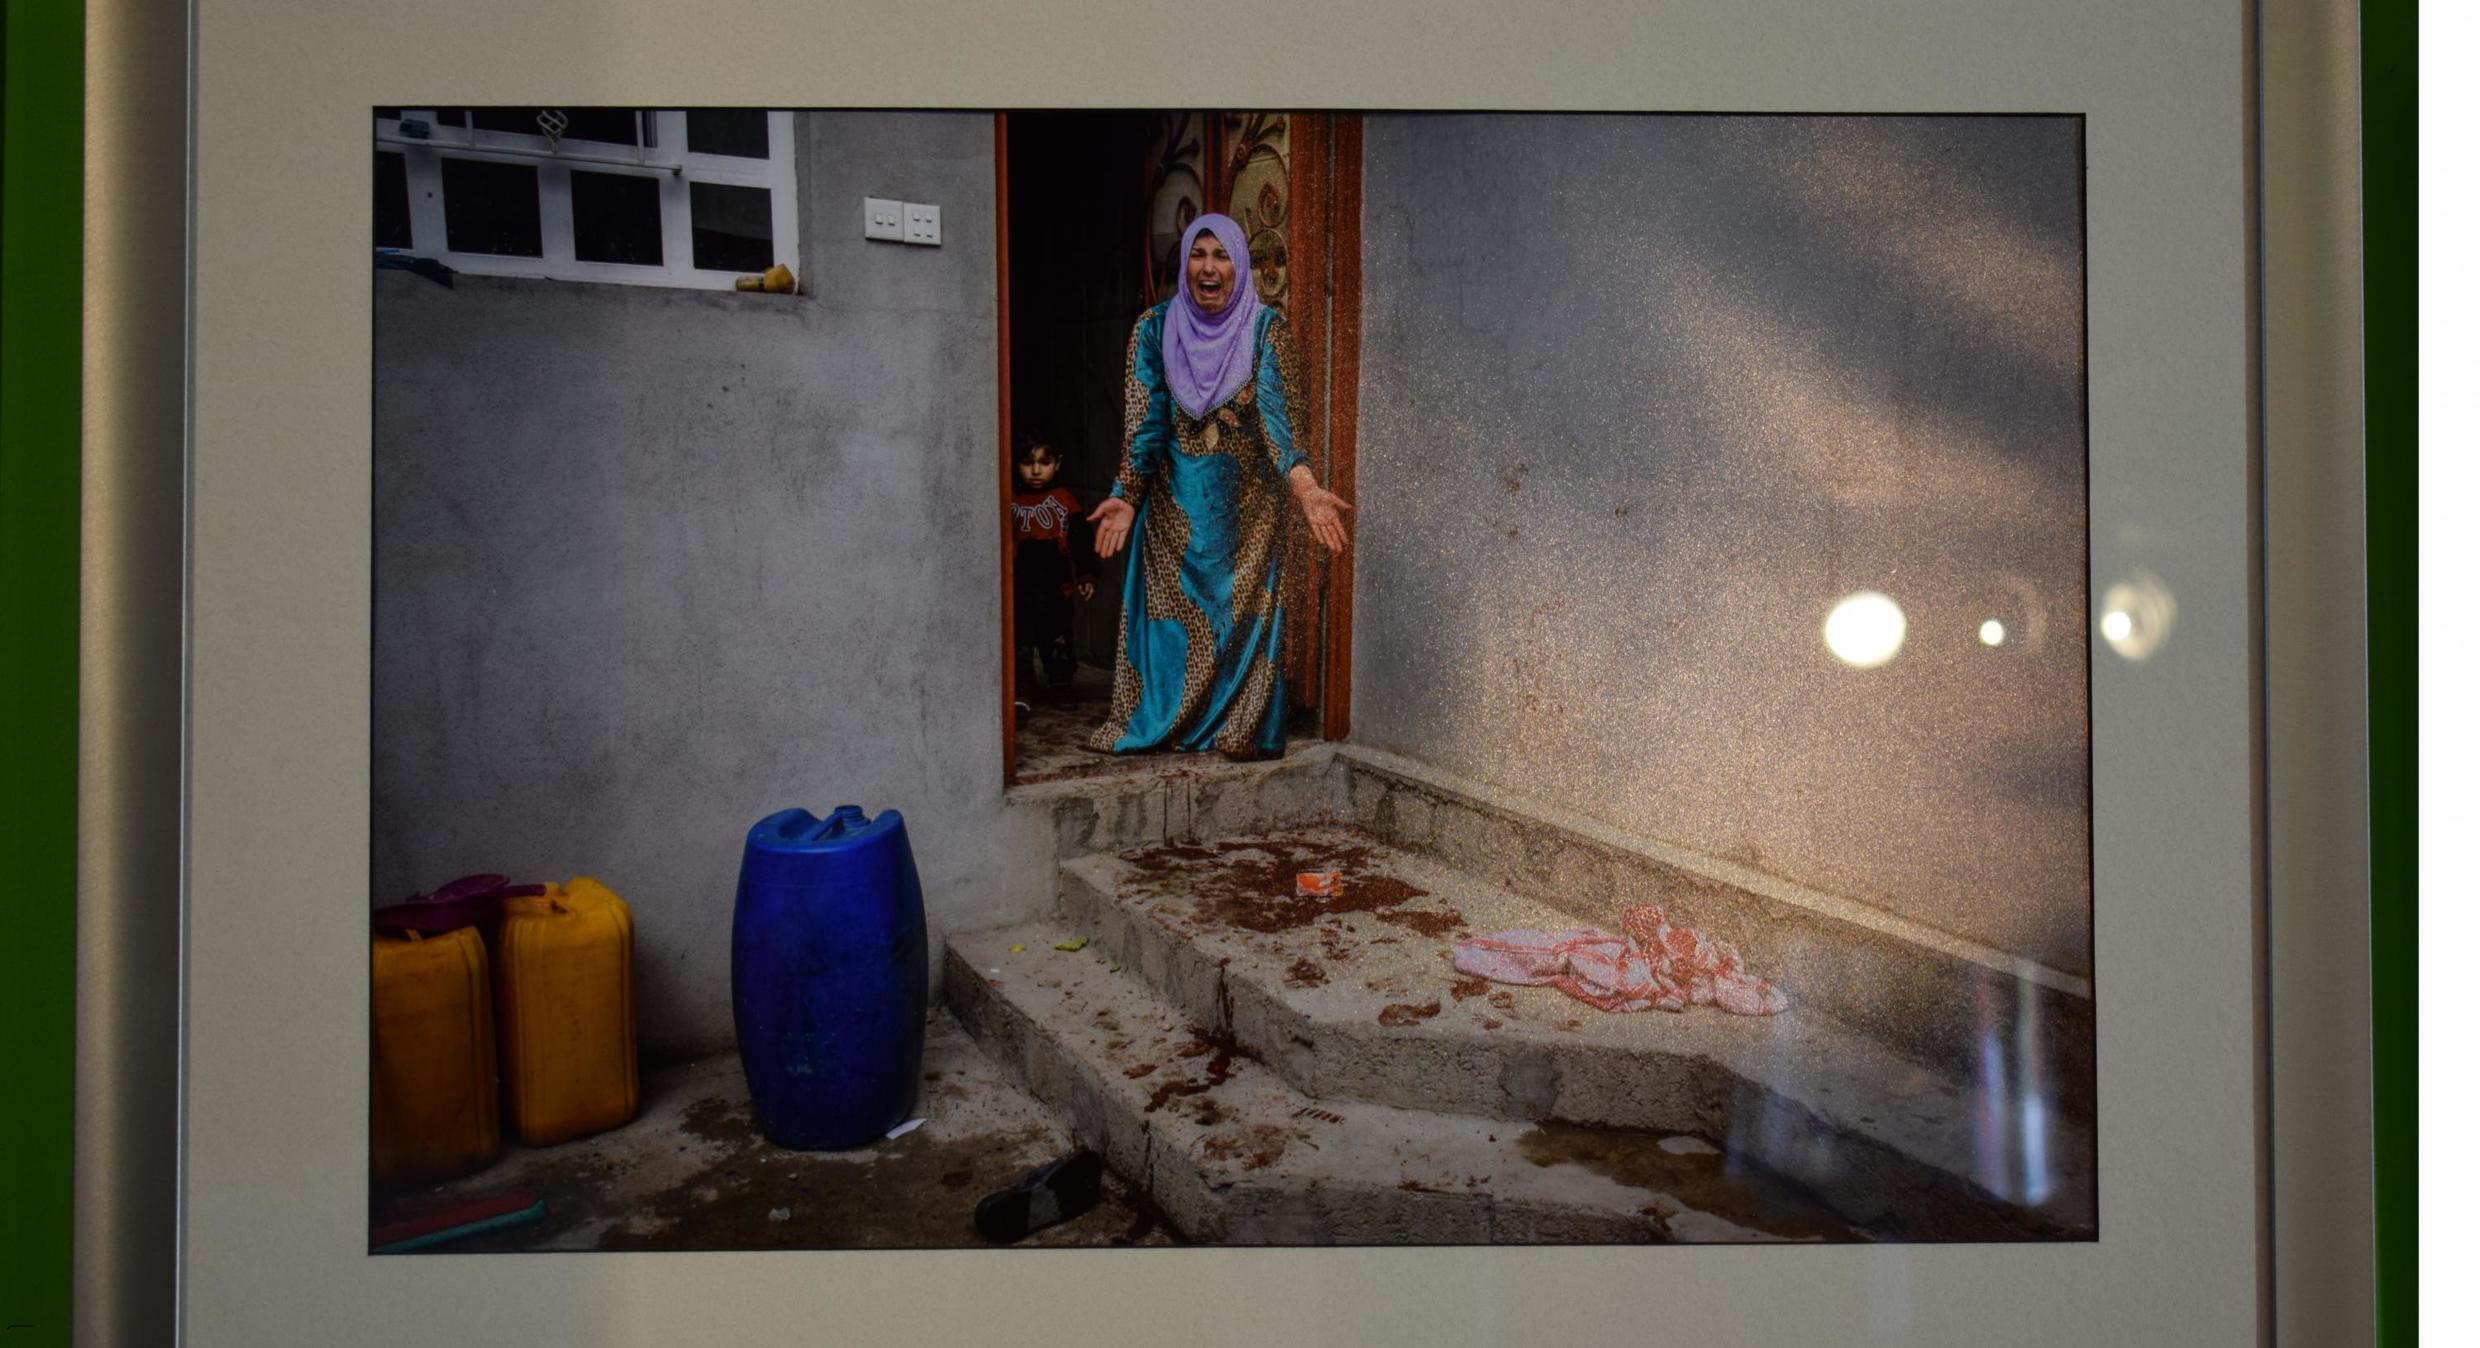 Photo taken by Ivor Prickett of a woman screaming after her son is killed